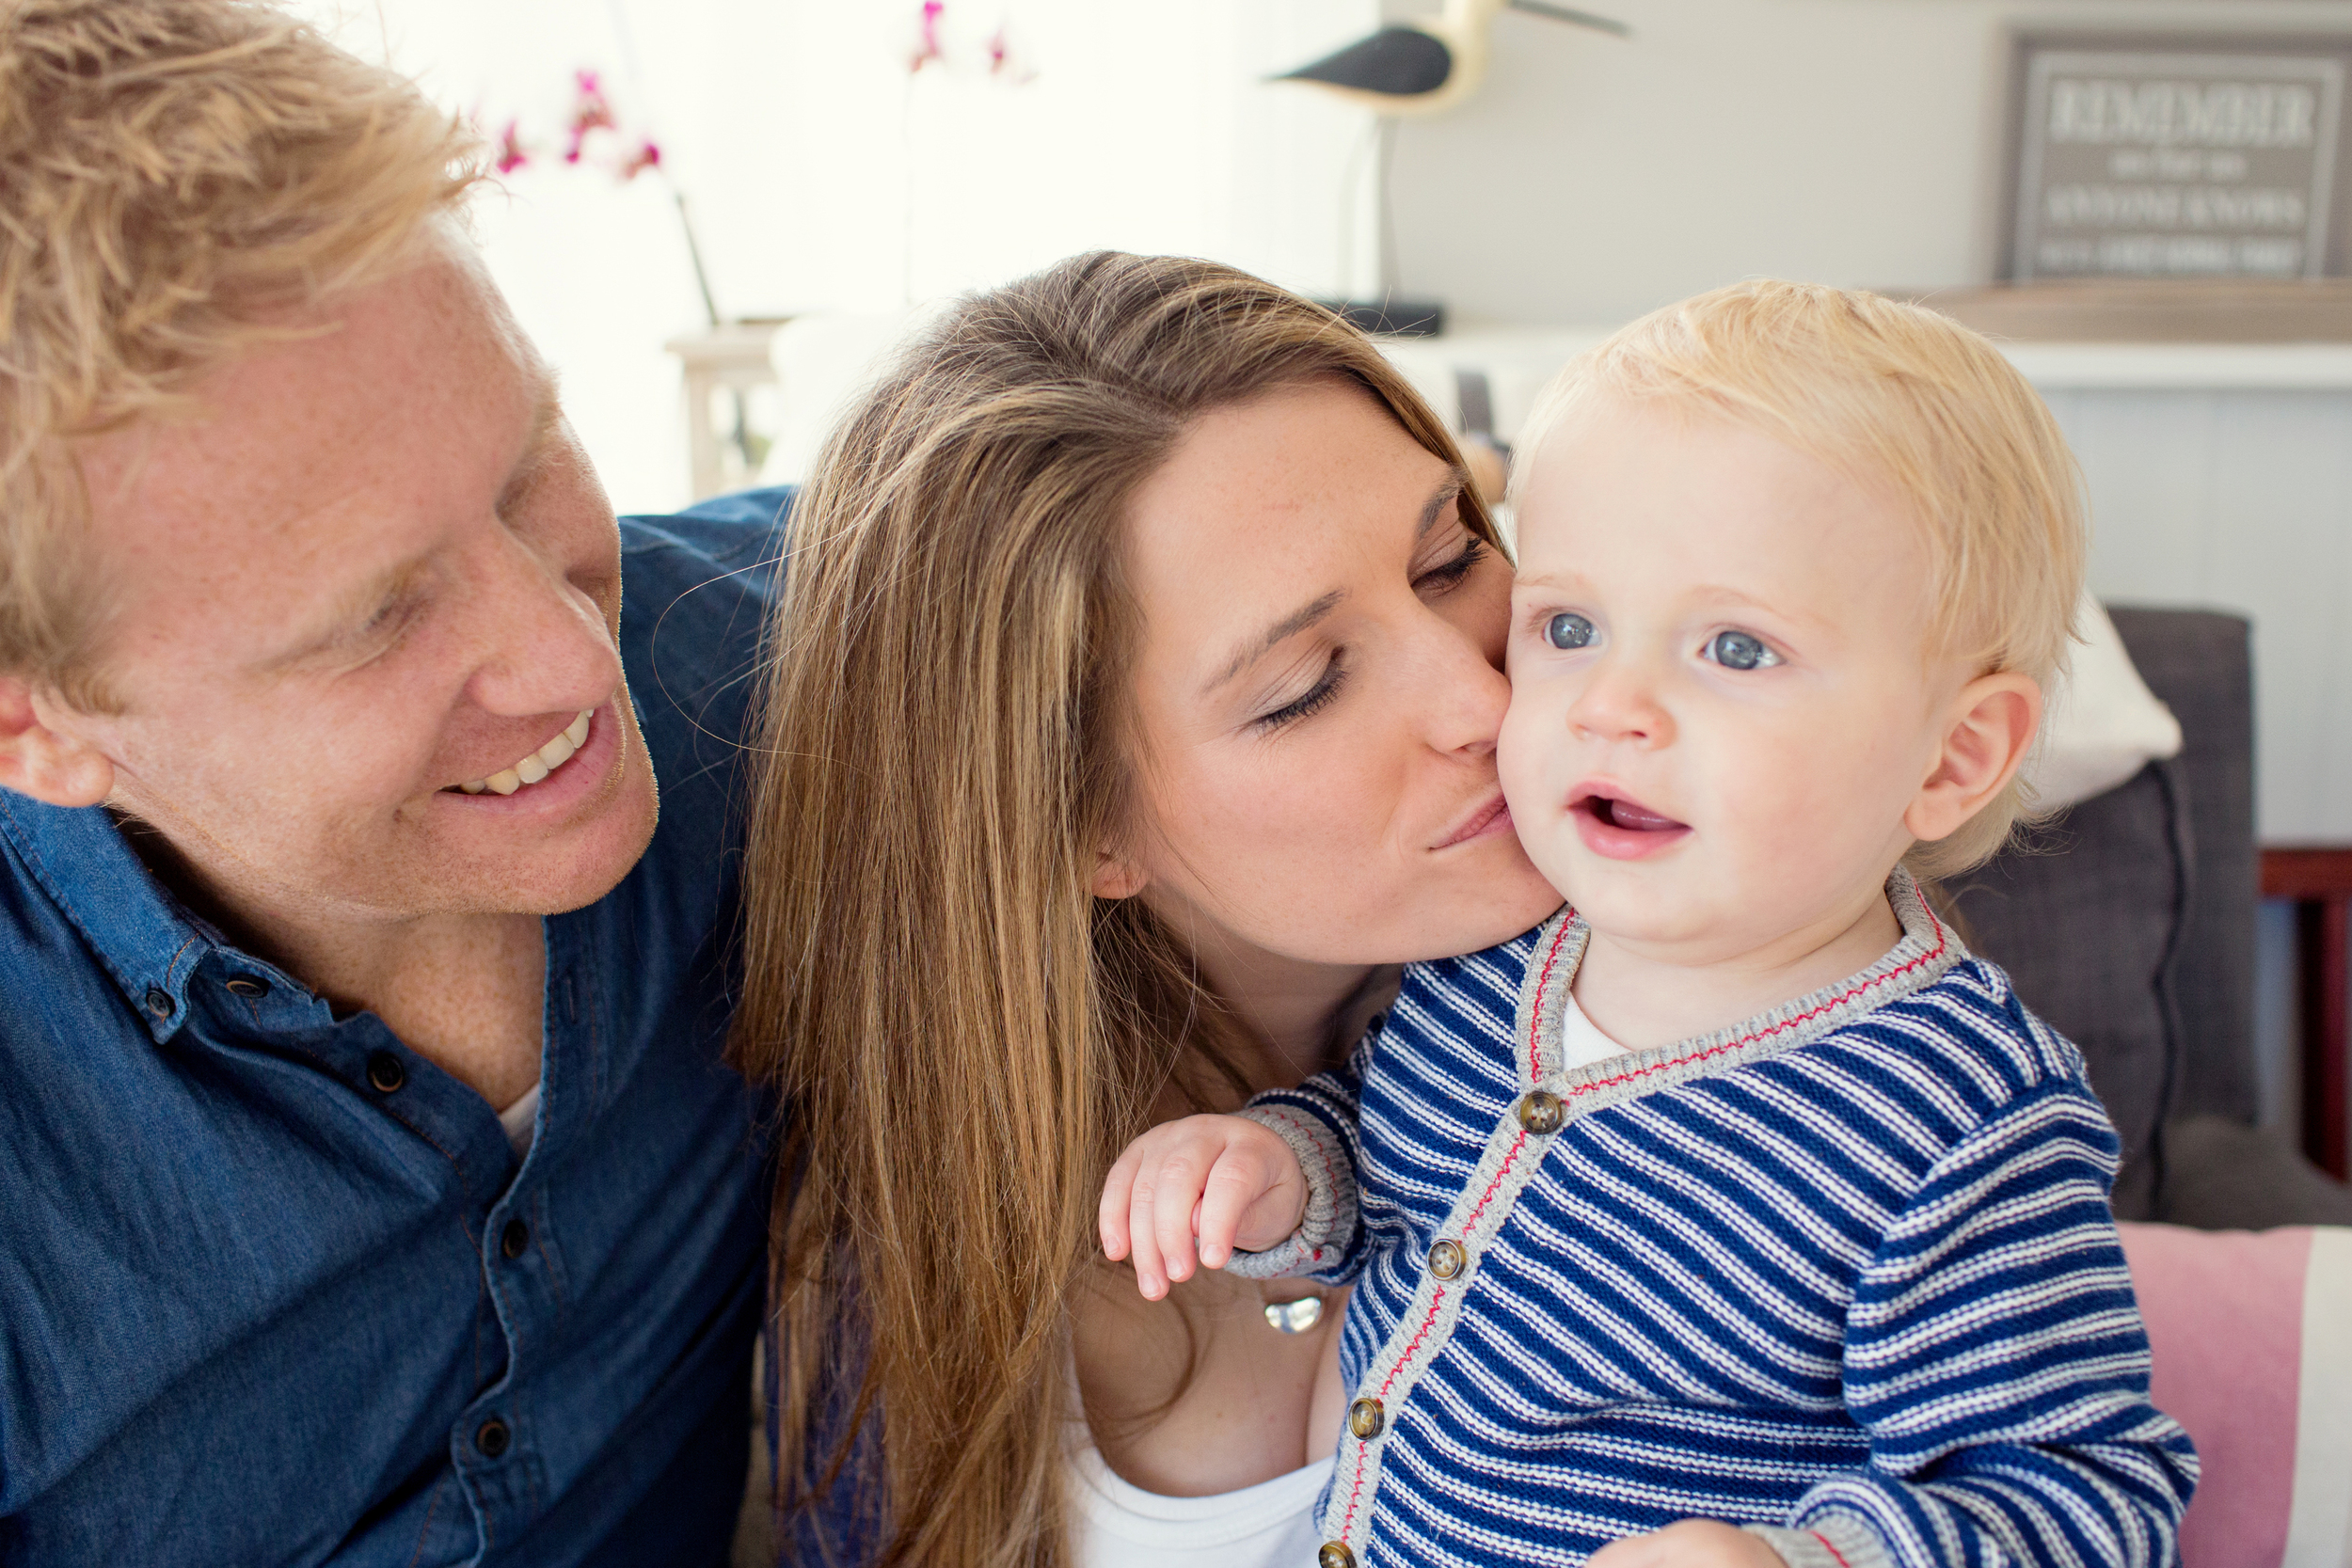 Lisa, Will & Louis_Sophie Evans photograpy, At home family shoot_143.jpg